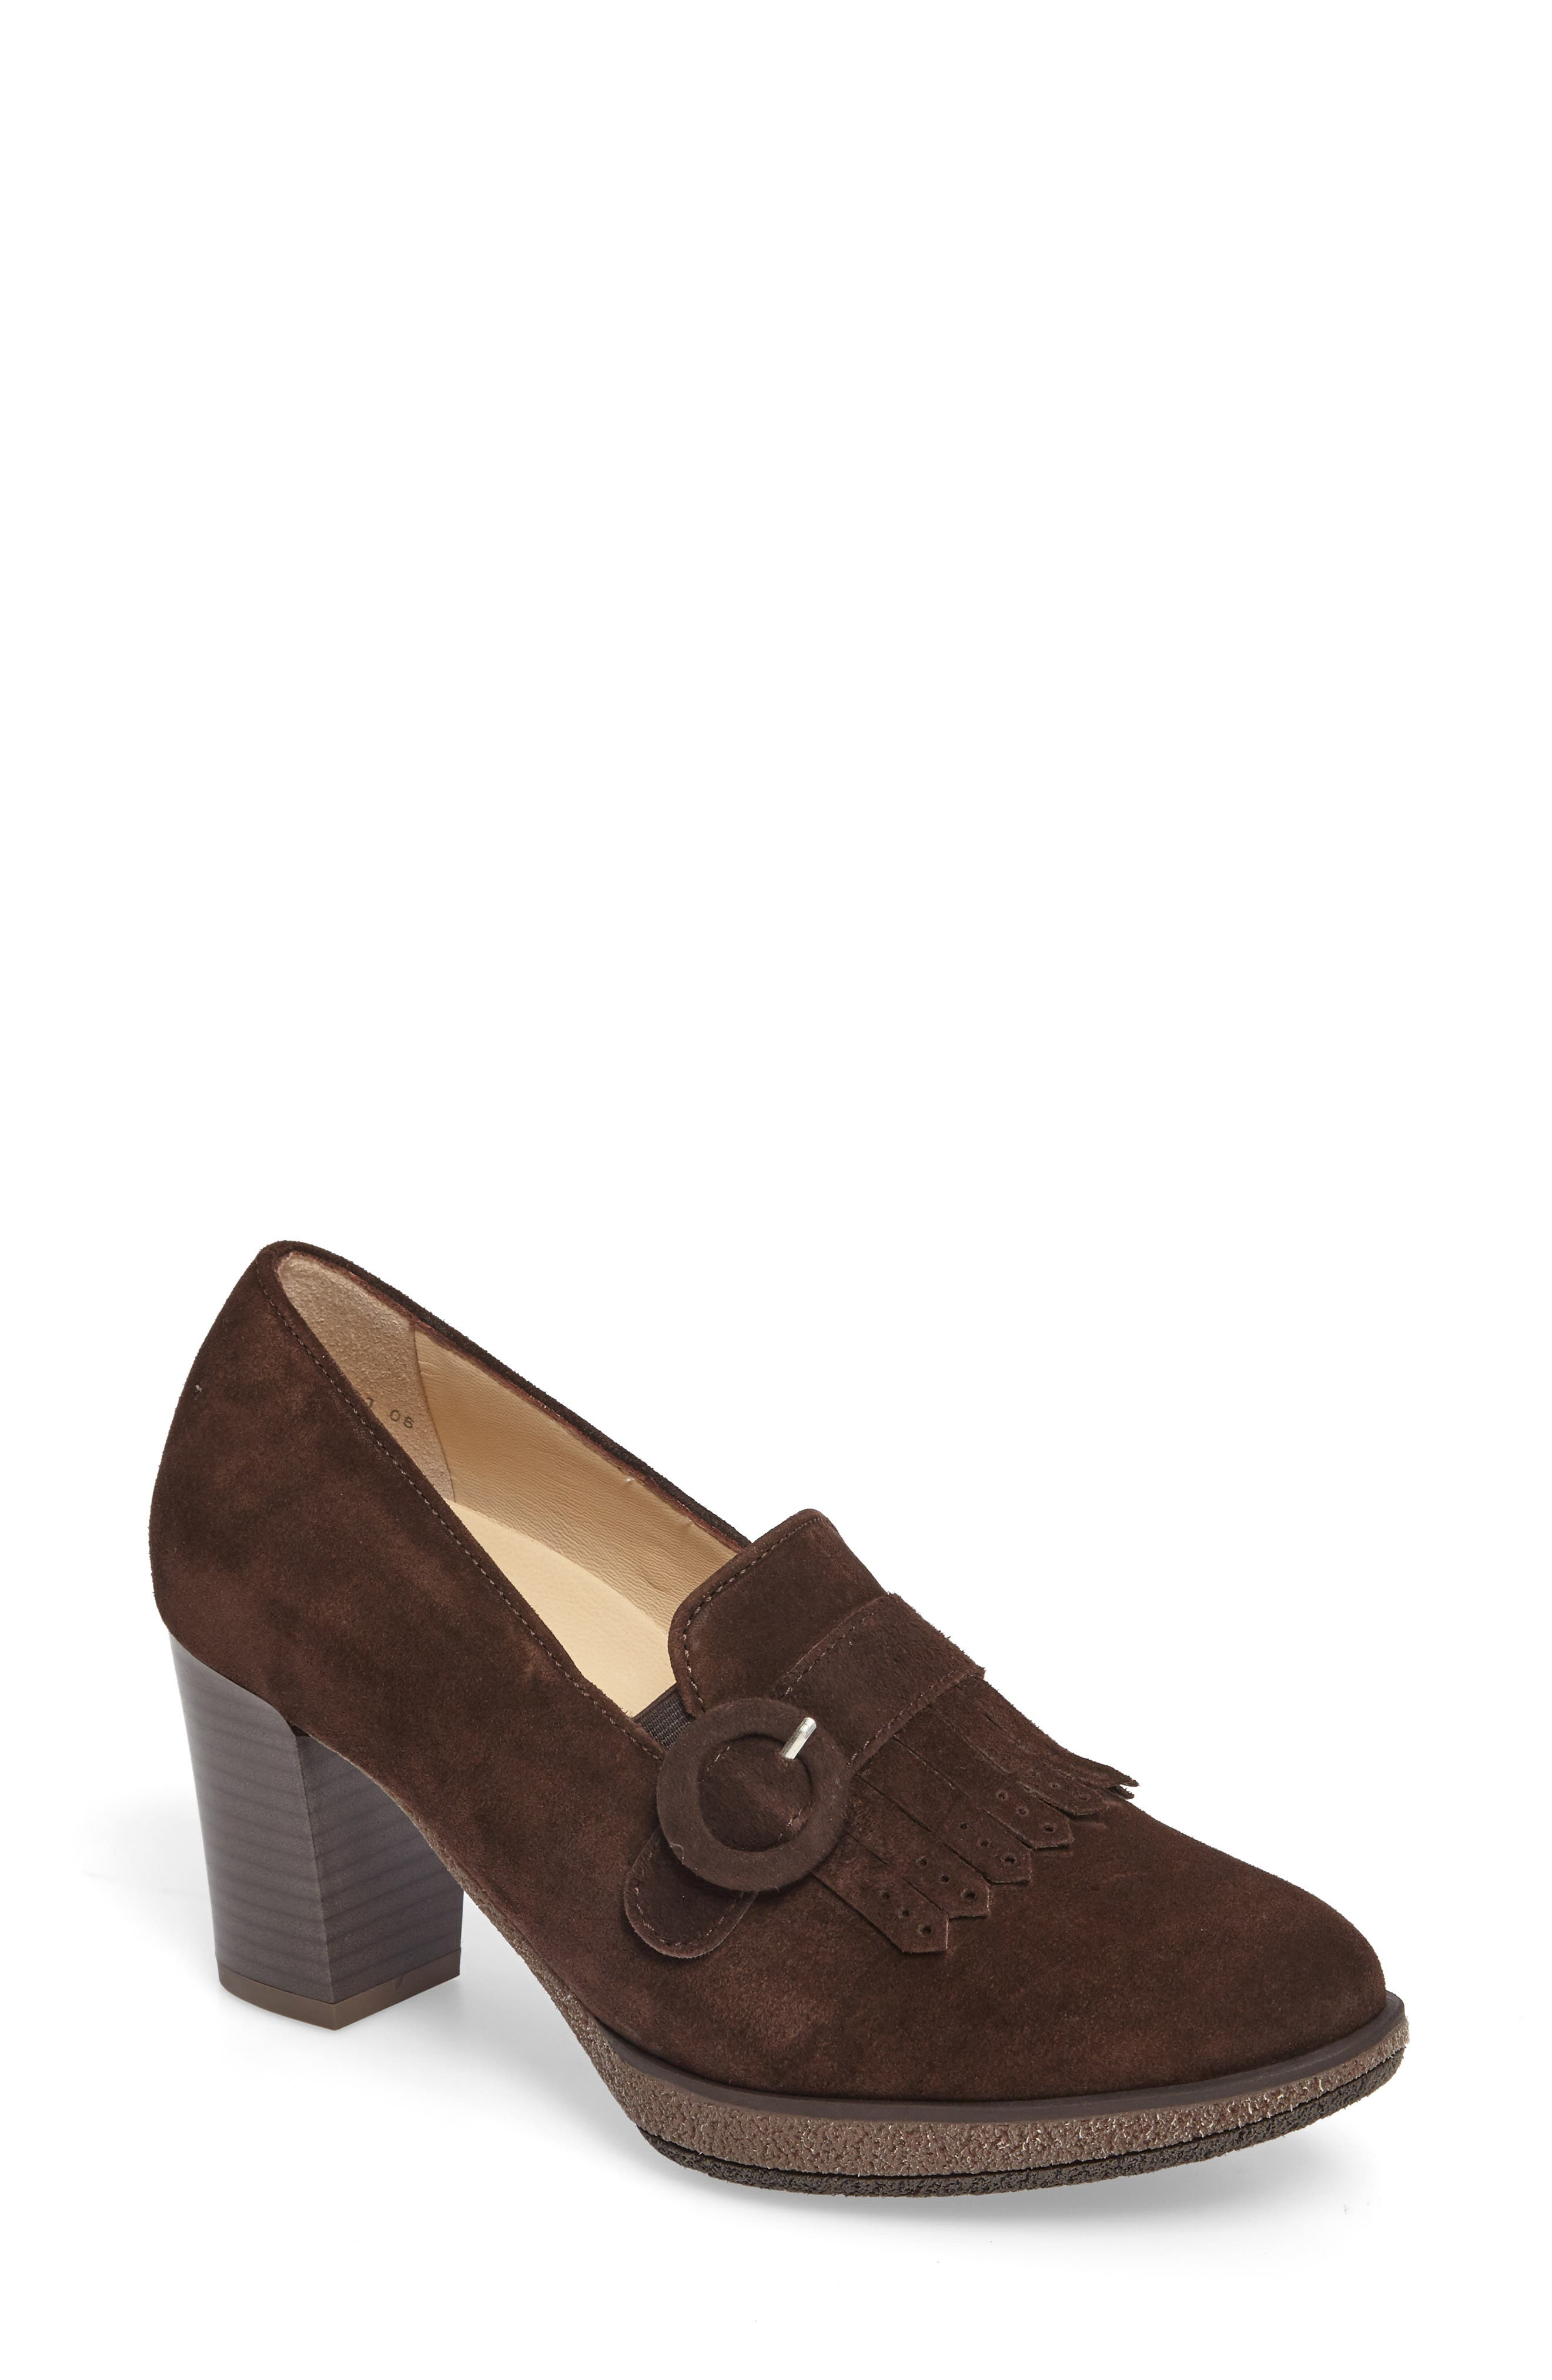 Becky Loafer Pump,                             Main thumbnail 1, color,                             BROWN SUEDE